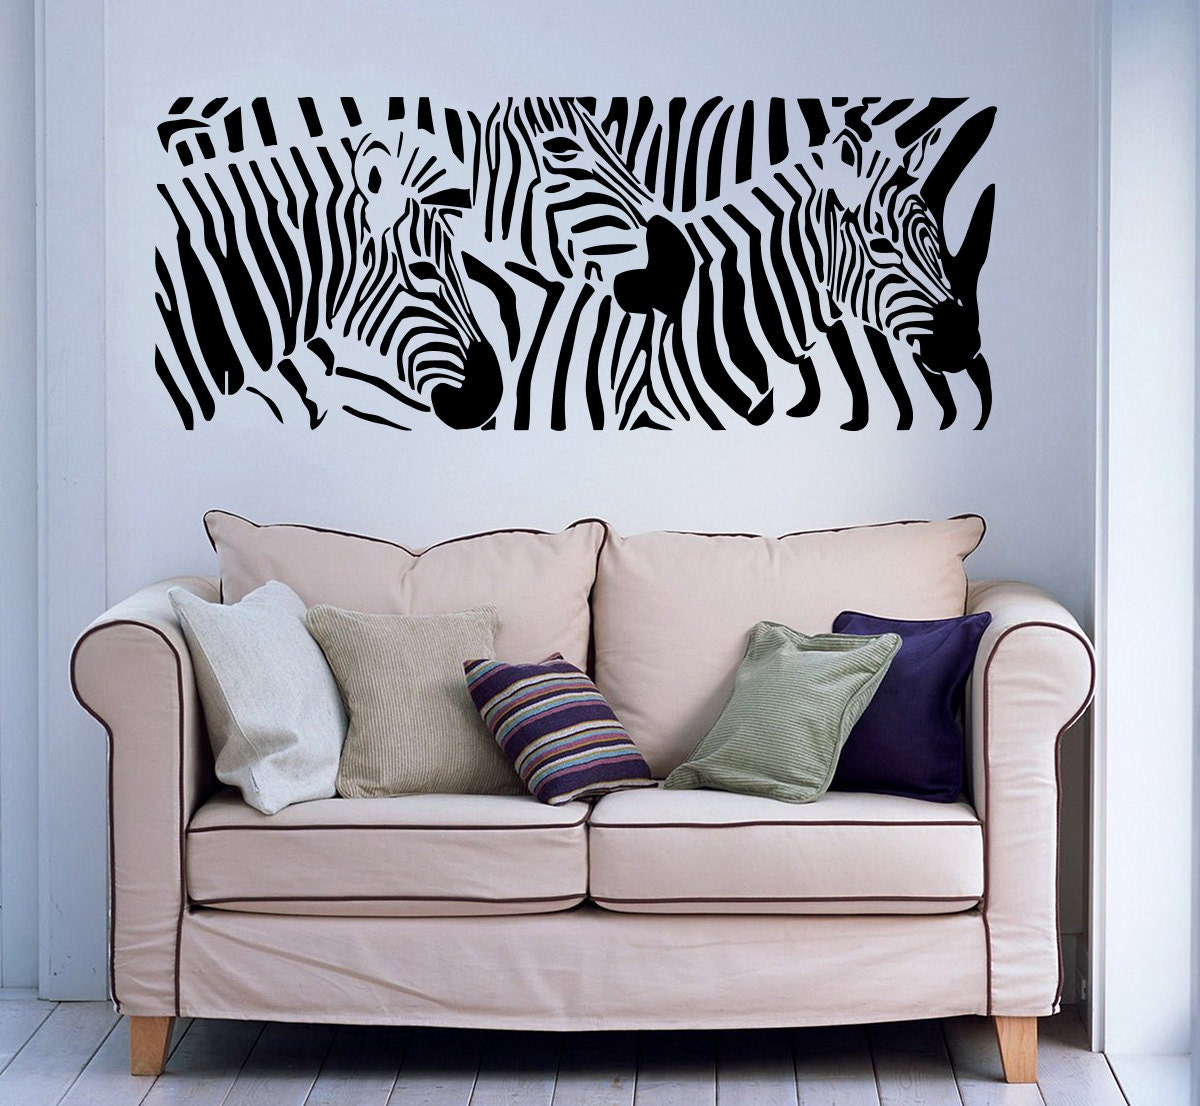 wall decals zebra animals jungle safari african childrens. Black Bedroom Furniture Sets. Home Design Ideas